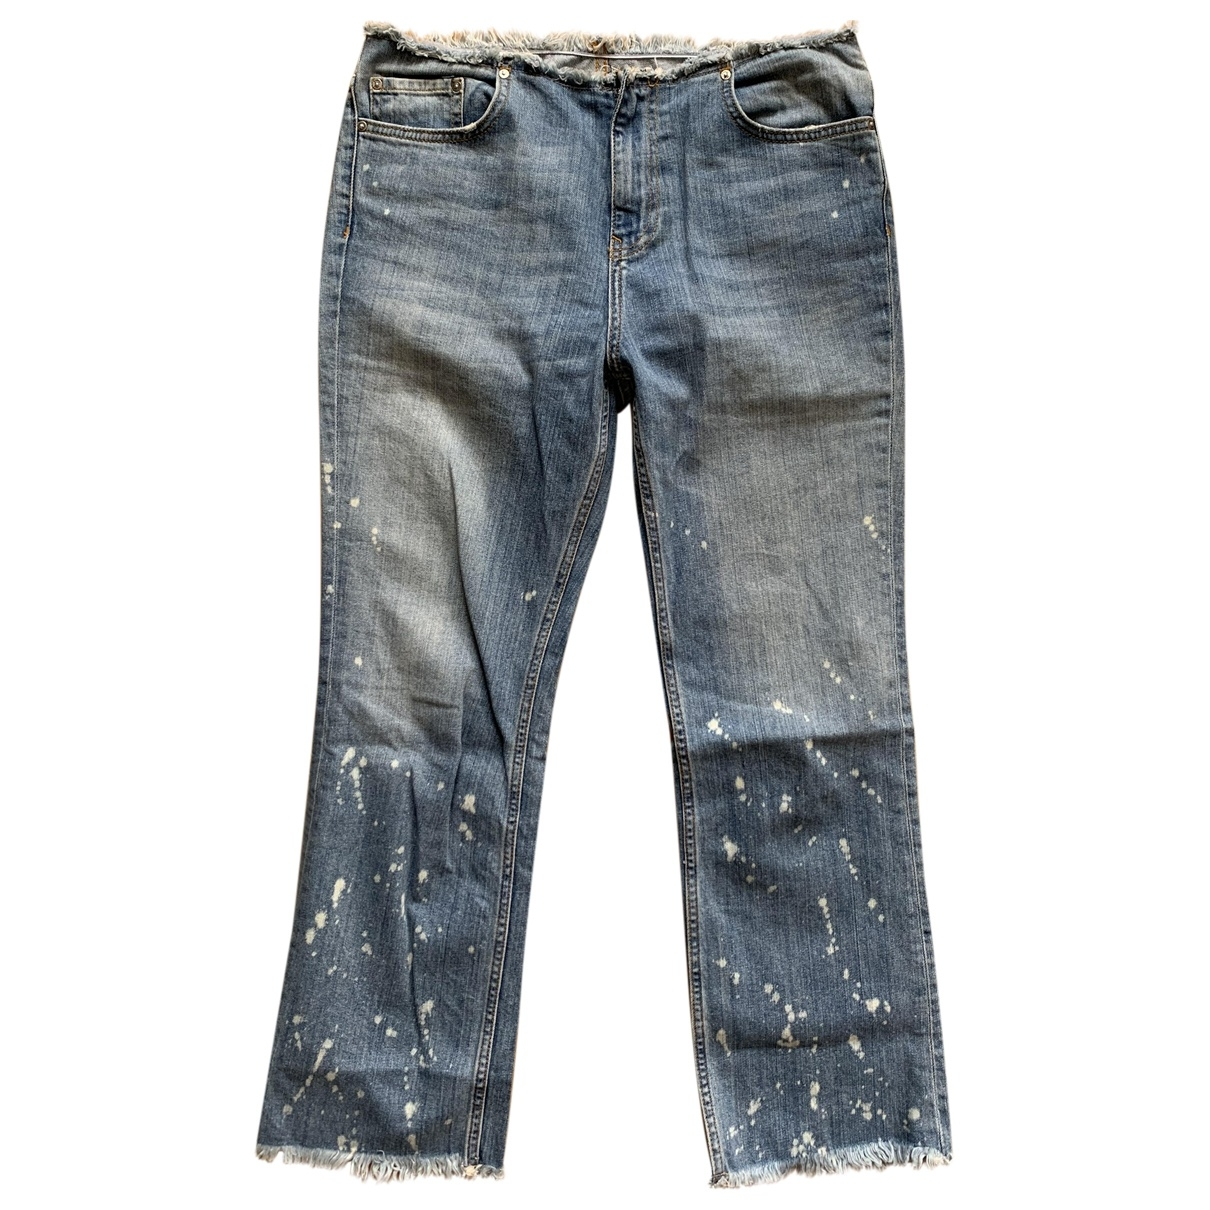 Free People \N Blue Cotton - elasthane Jeans for Women 27 US